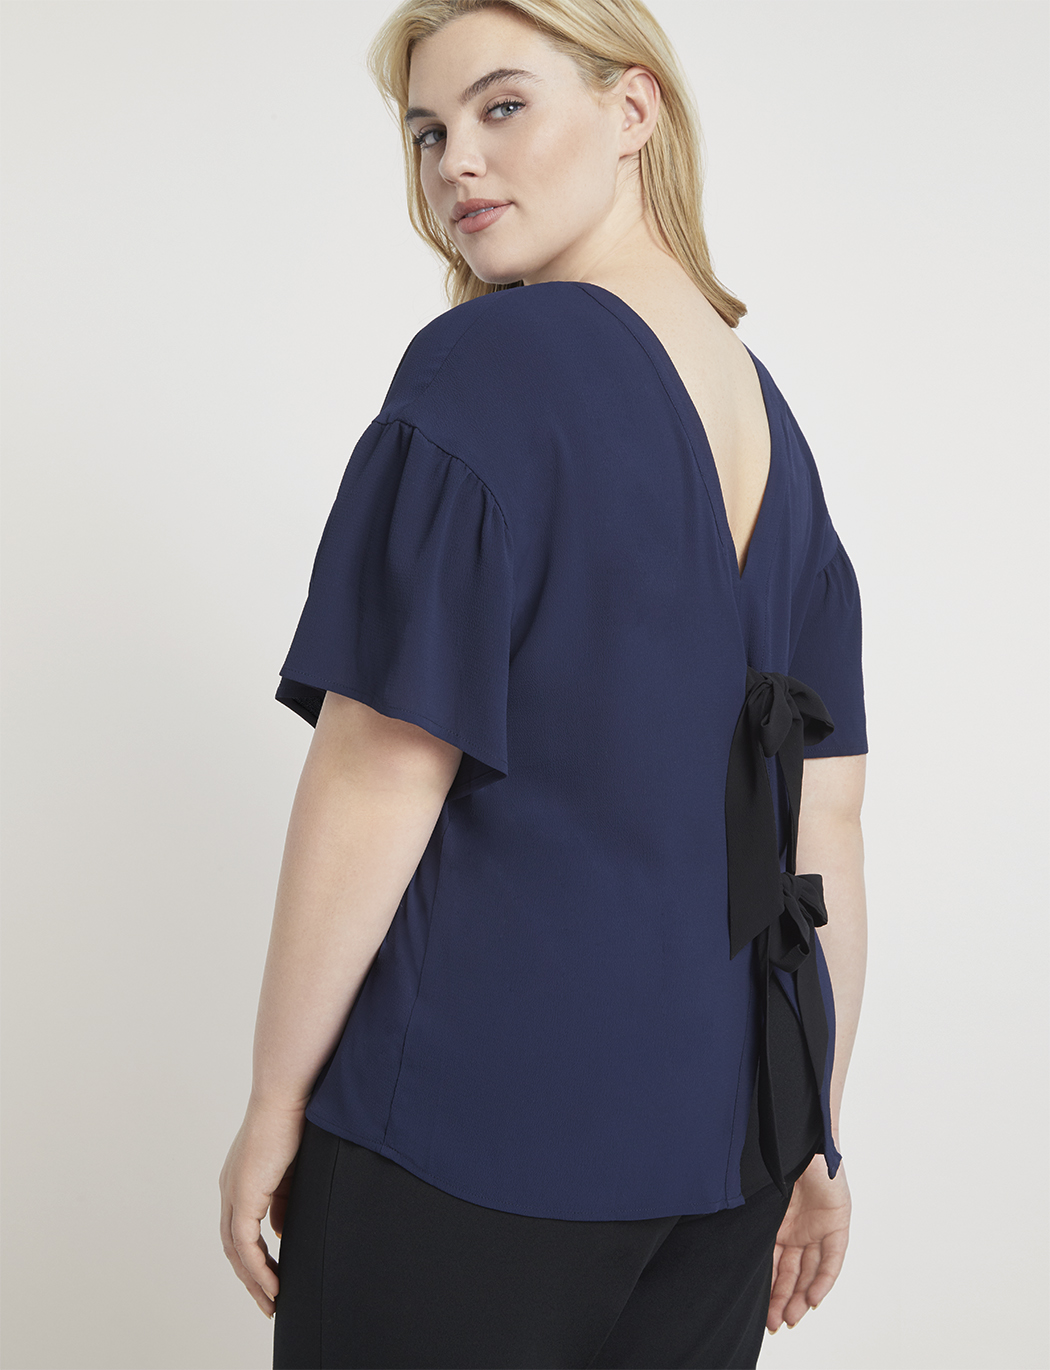 Flounce Sleeve Top with Bow Back